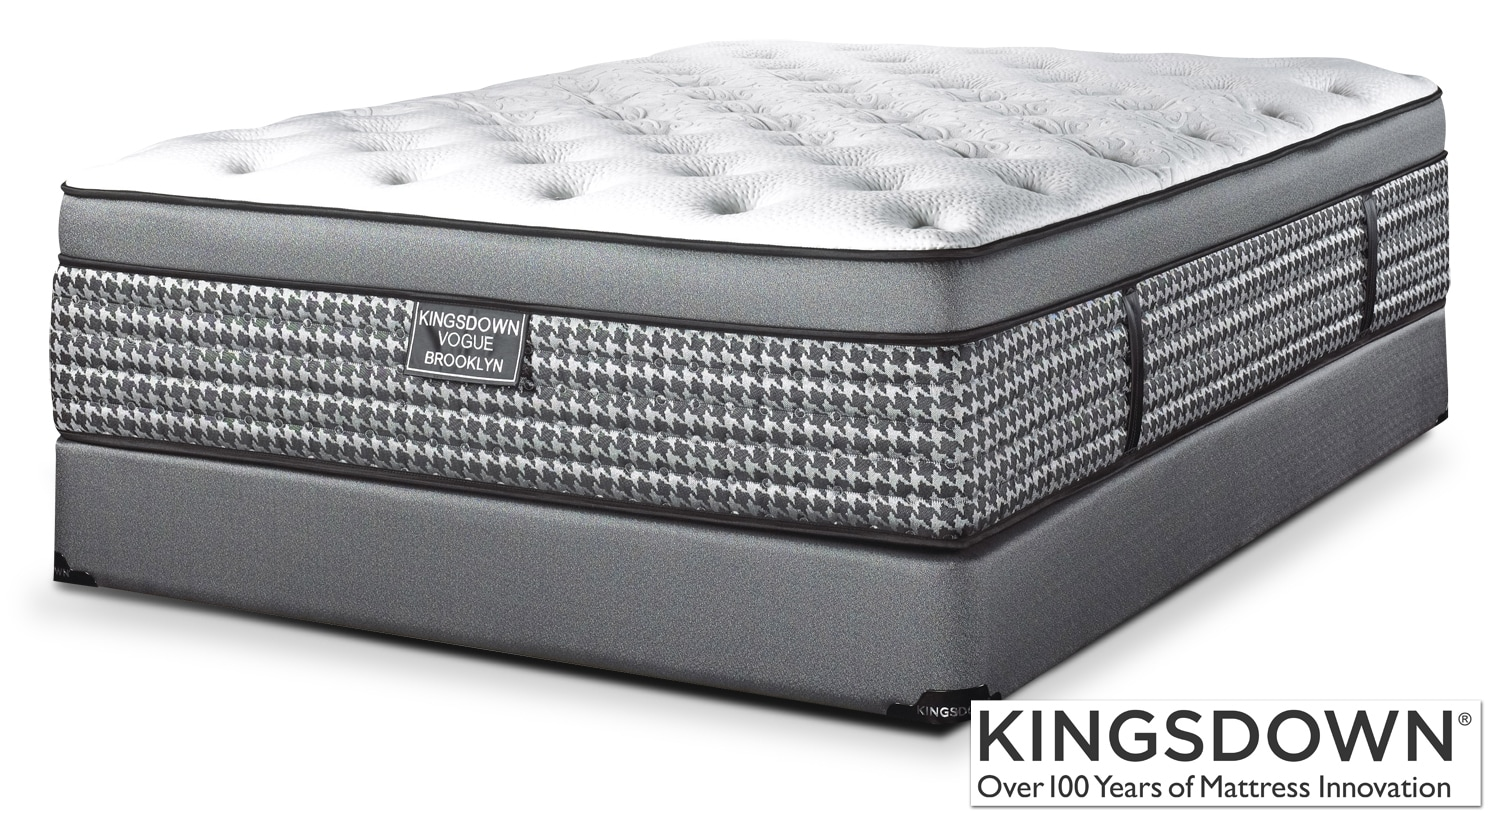 Mattresses and Bedding - Kingsdown Brooklyn Queen Mattress/Boxspring Set